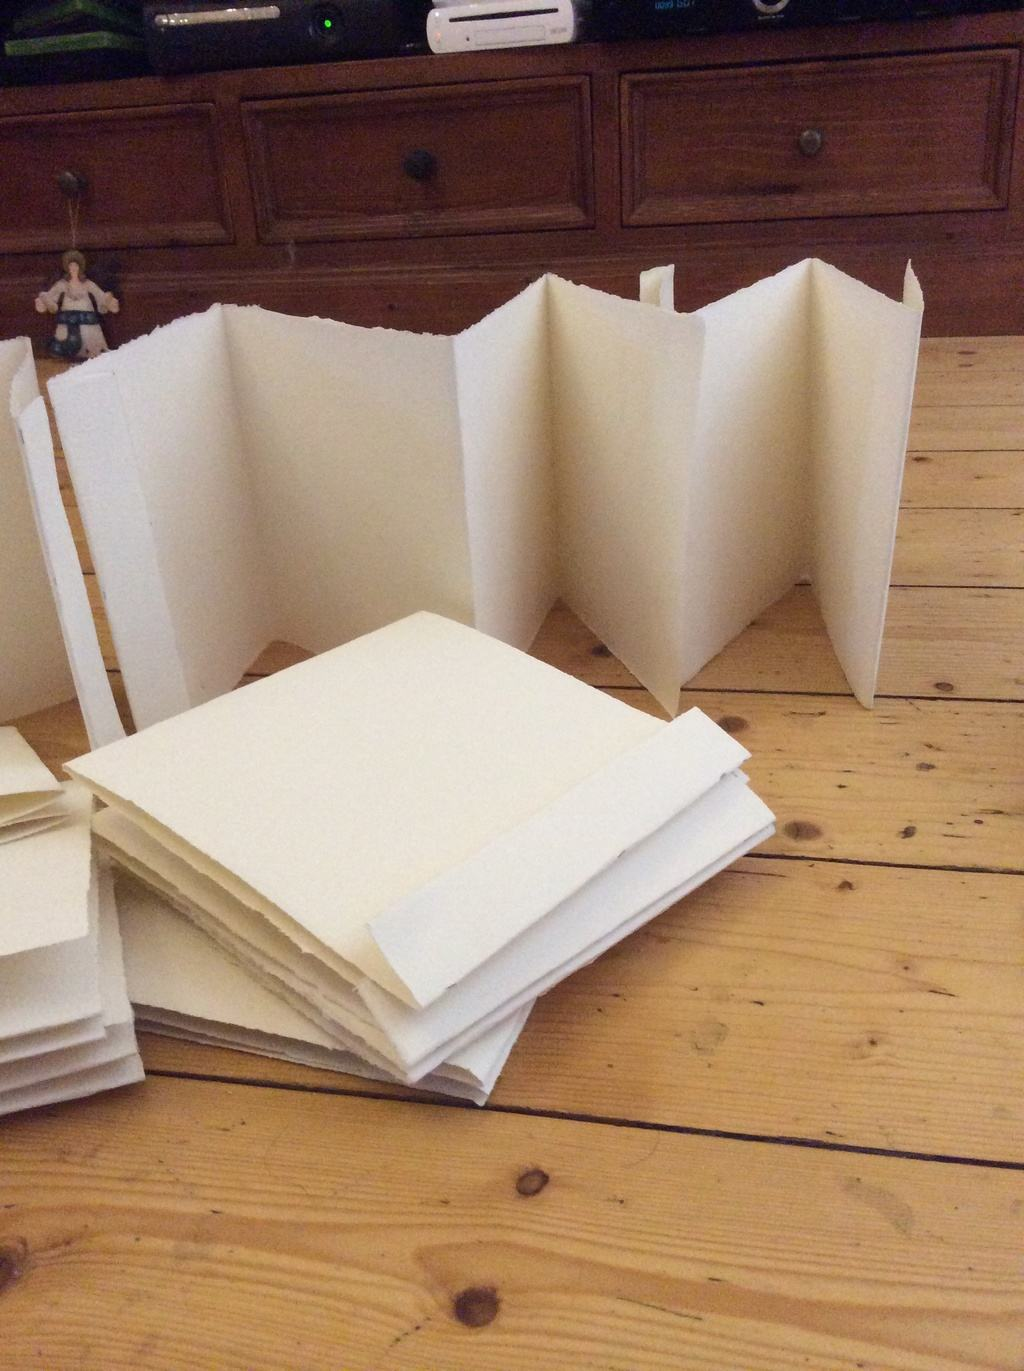 My starting point for my accordion book project